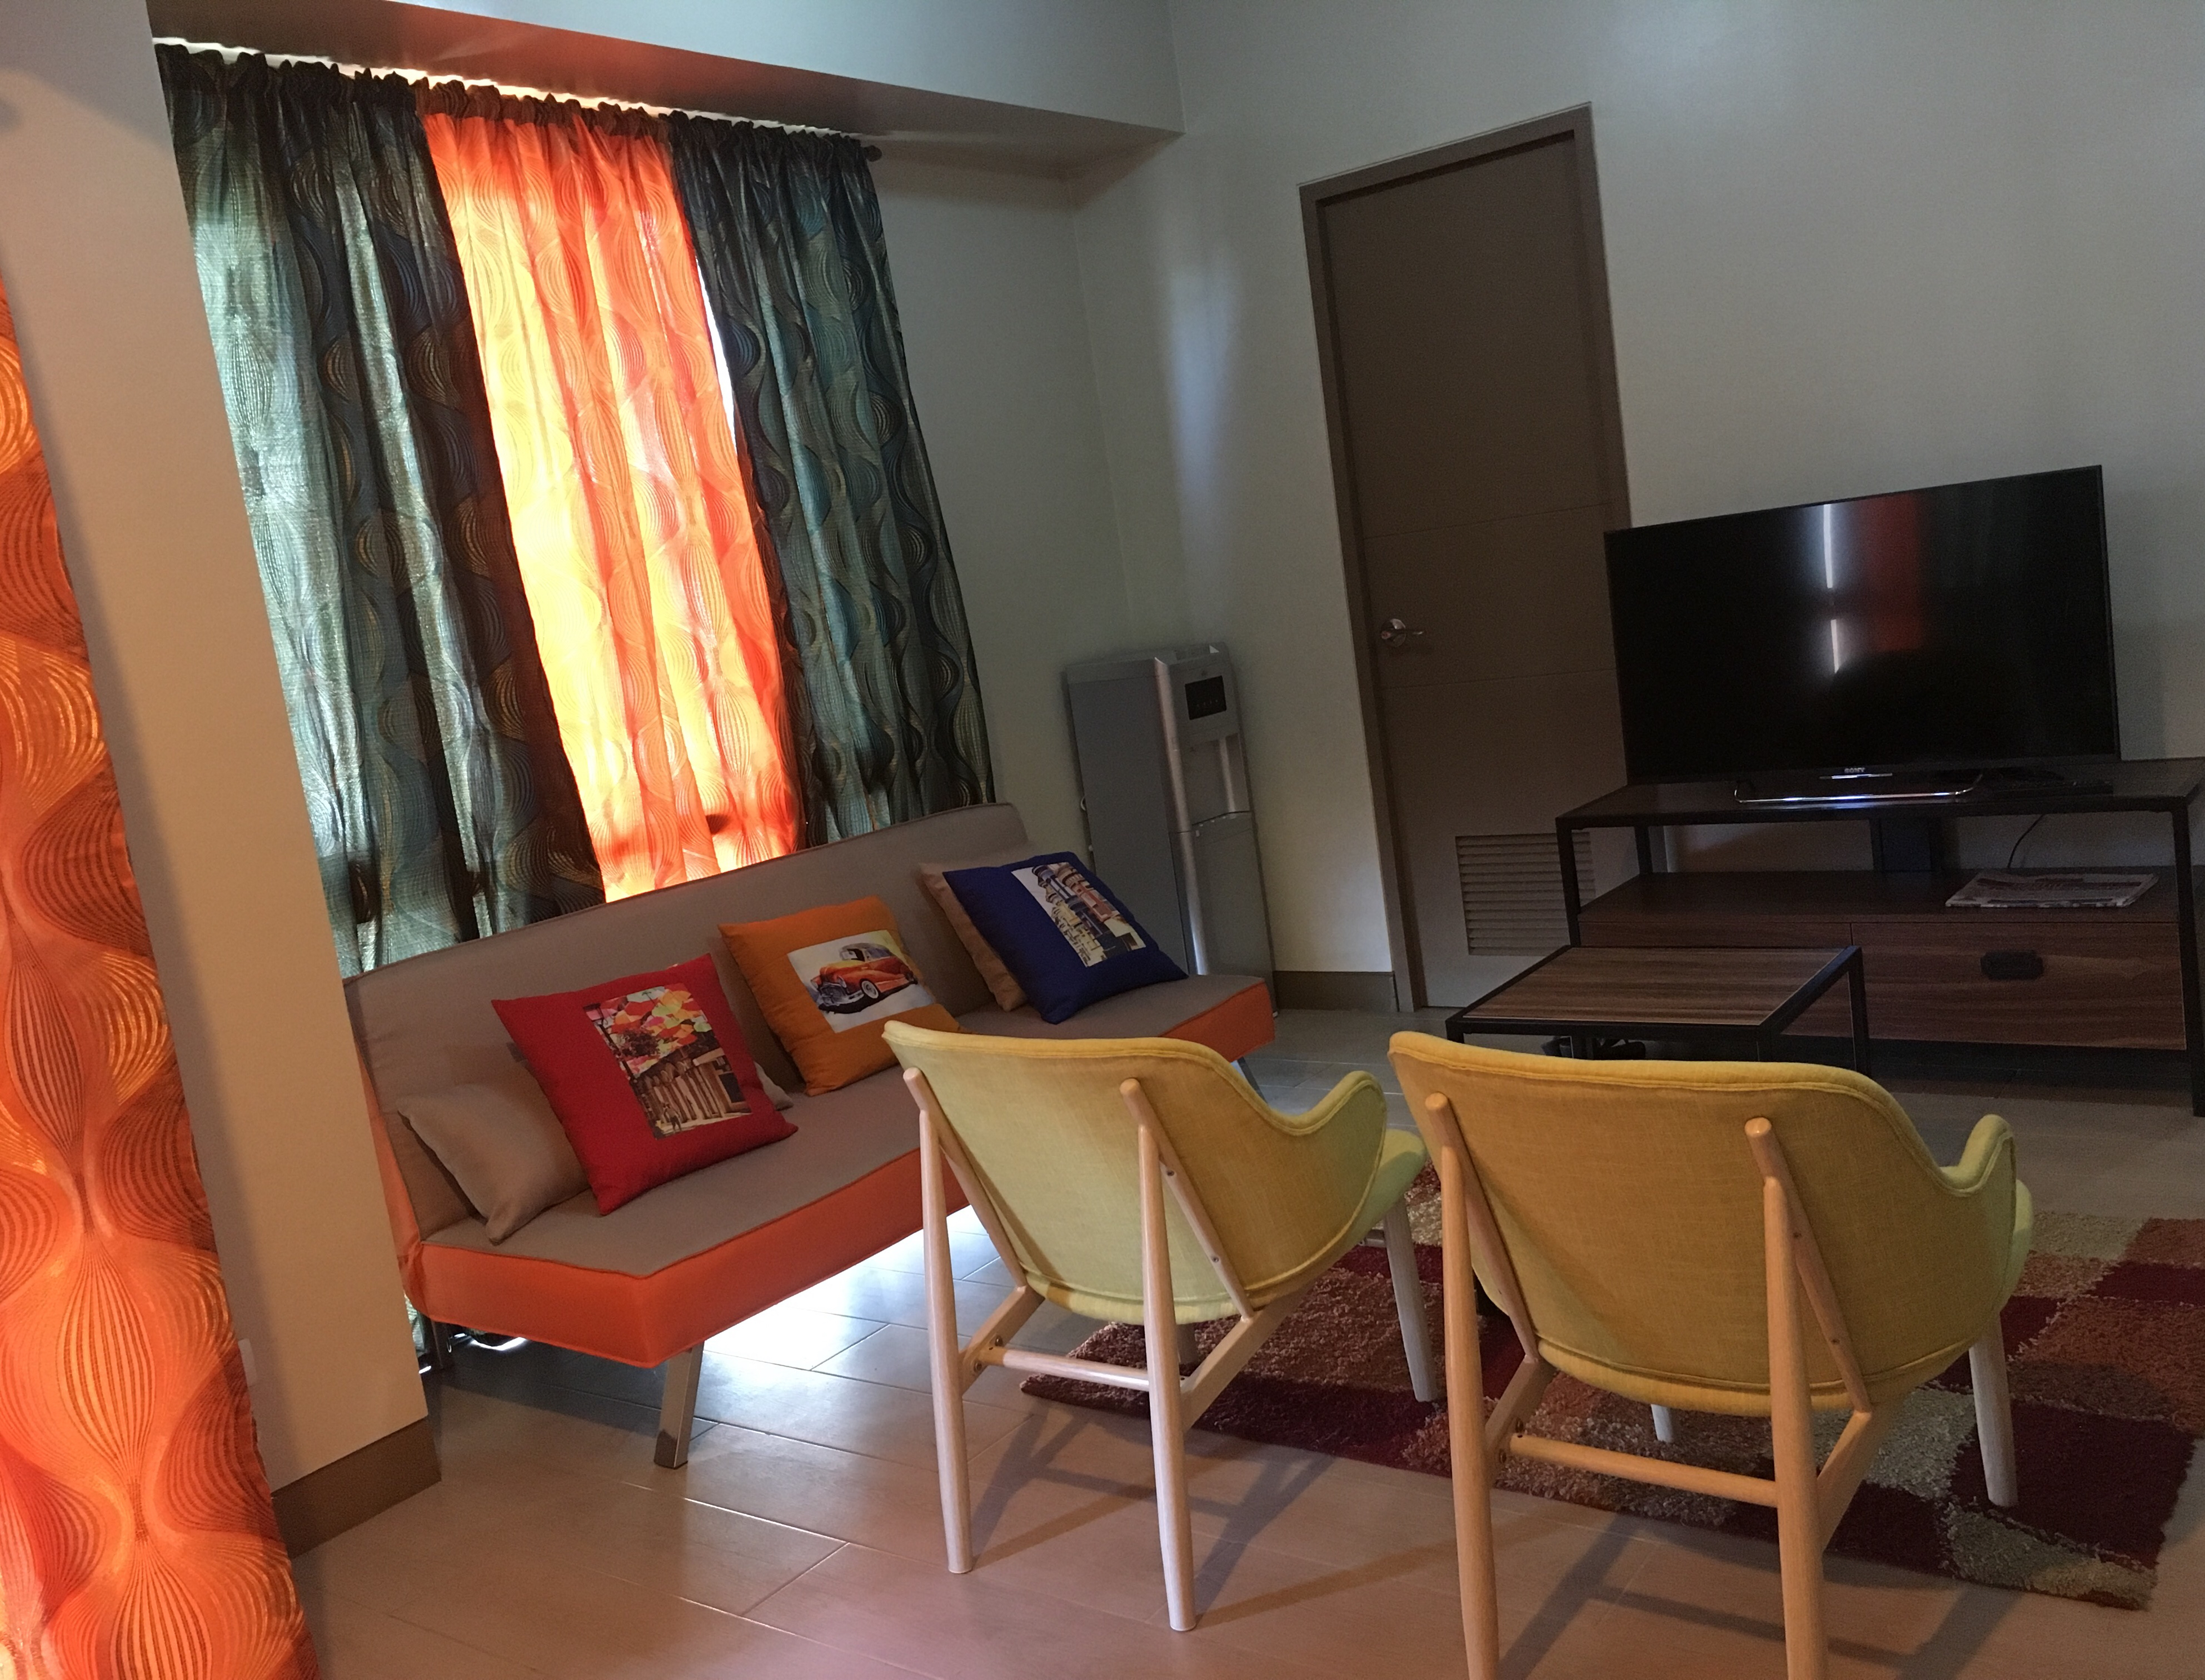 A Cozy Homey Studio Type Condo Unit At Naia 3 Apartments For Rent In Pasay Ncr Philippines